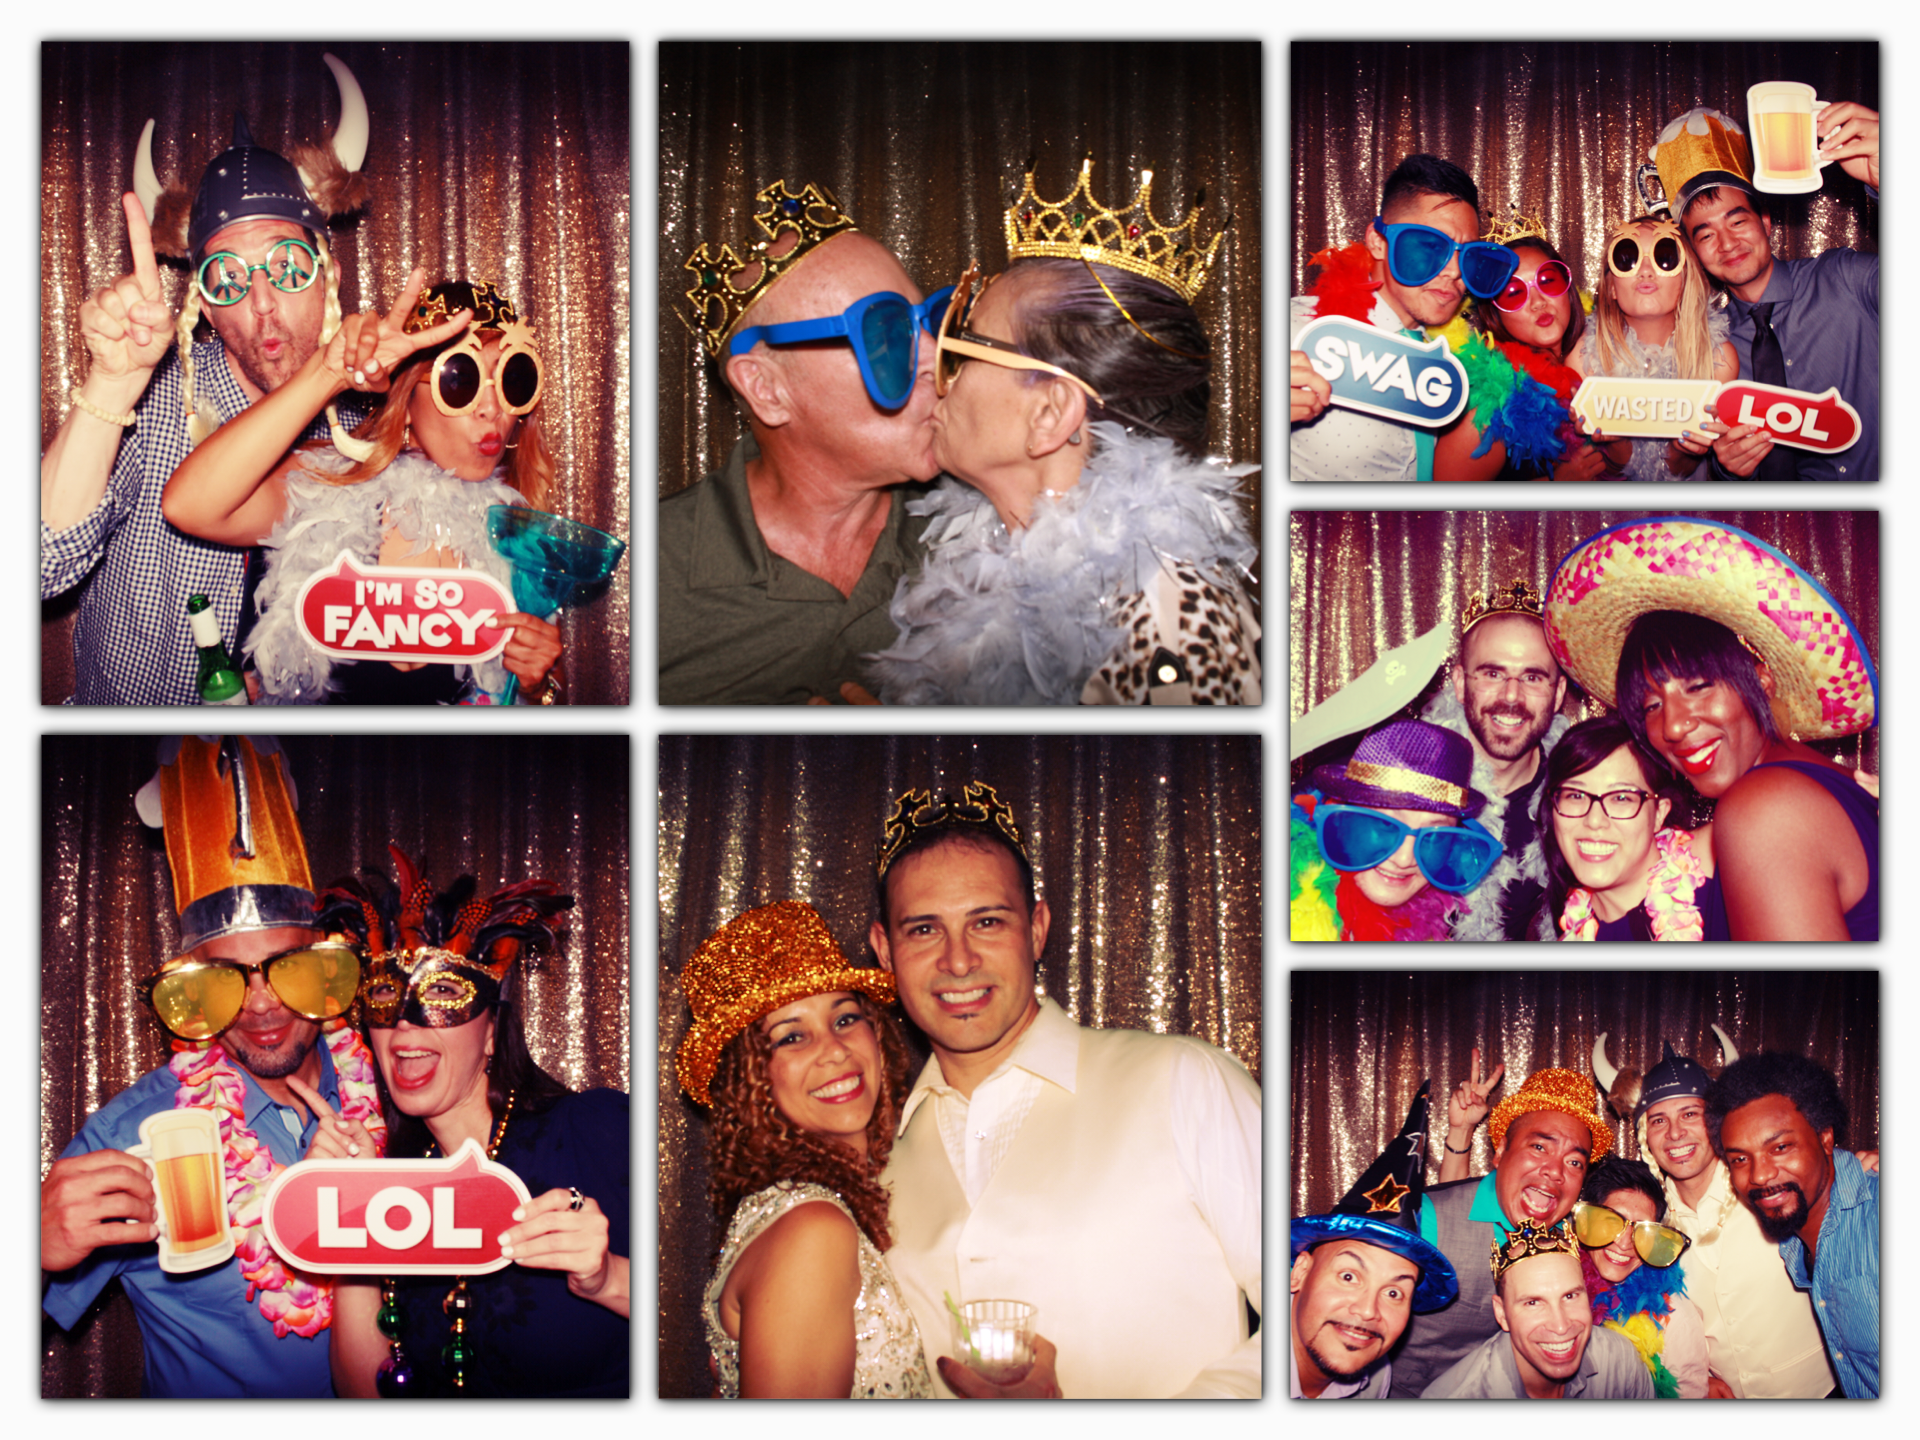 Statement Photo Booth!